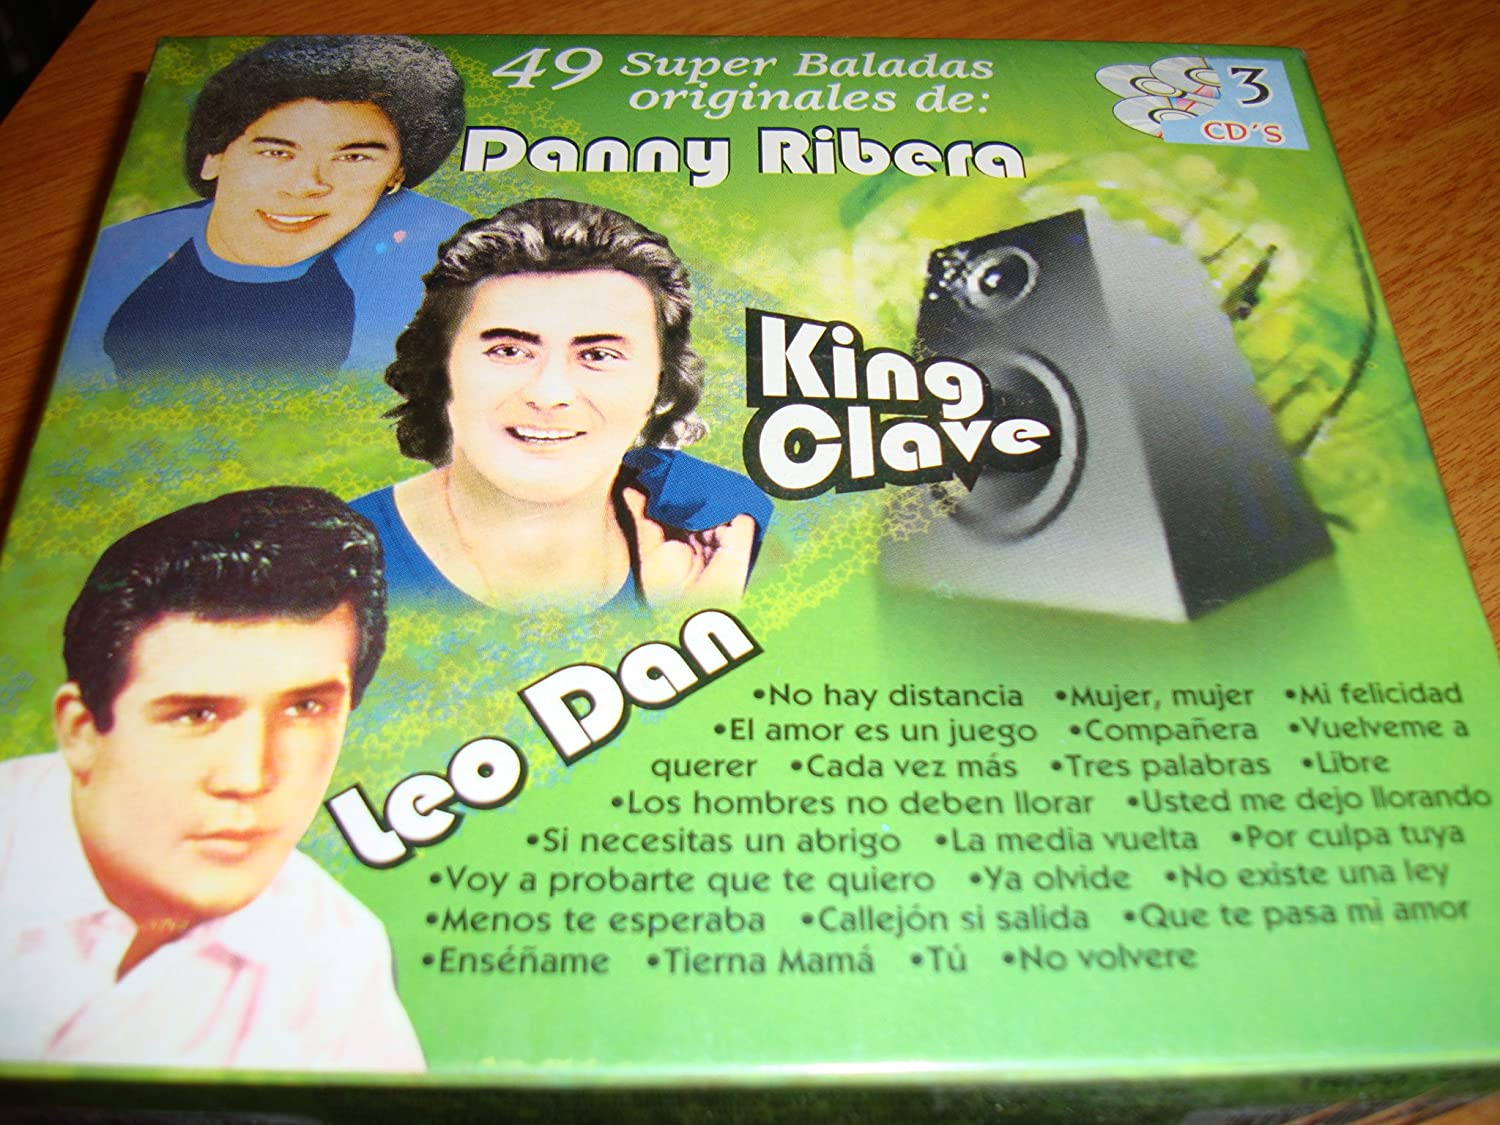 King Clave, Leo Dan Danny Ribera - 49 Super Baladas Originales - Amazon.com Music